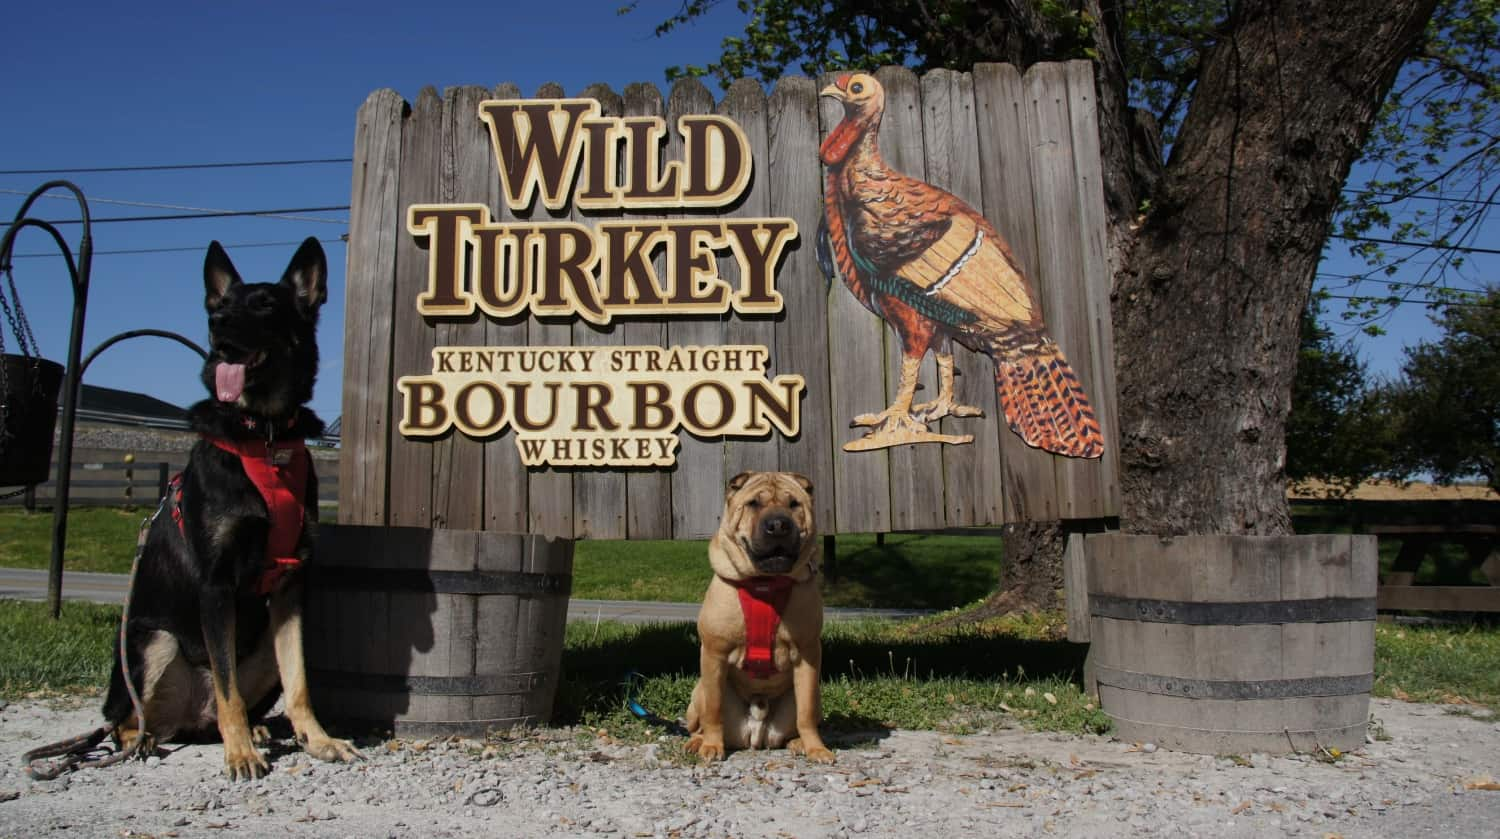 Barking Along Kentucky's Bourbon Trail